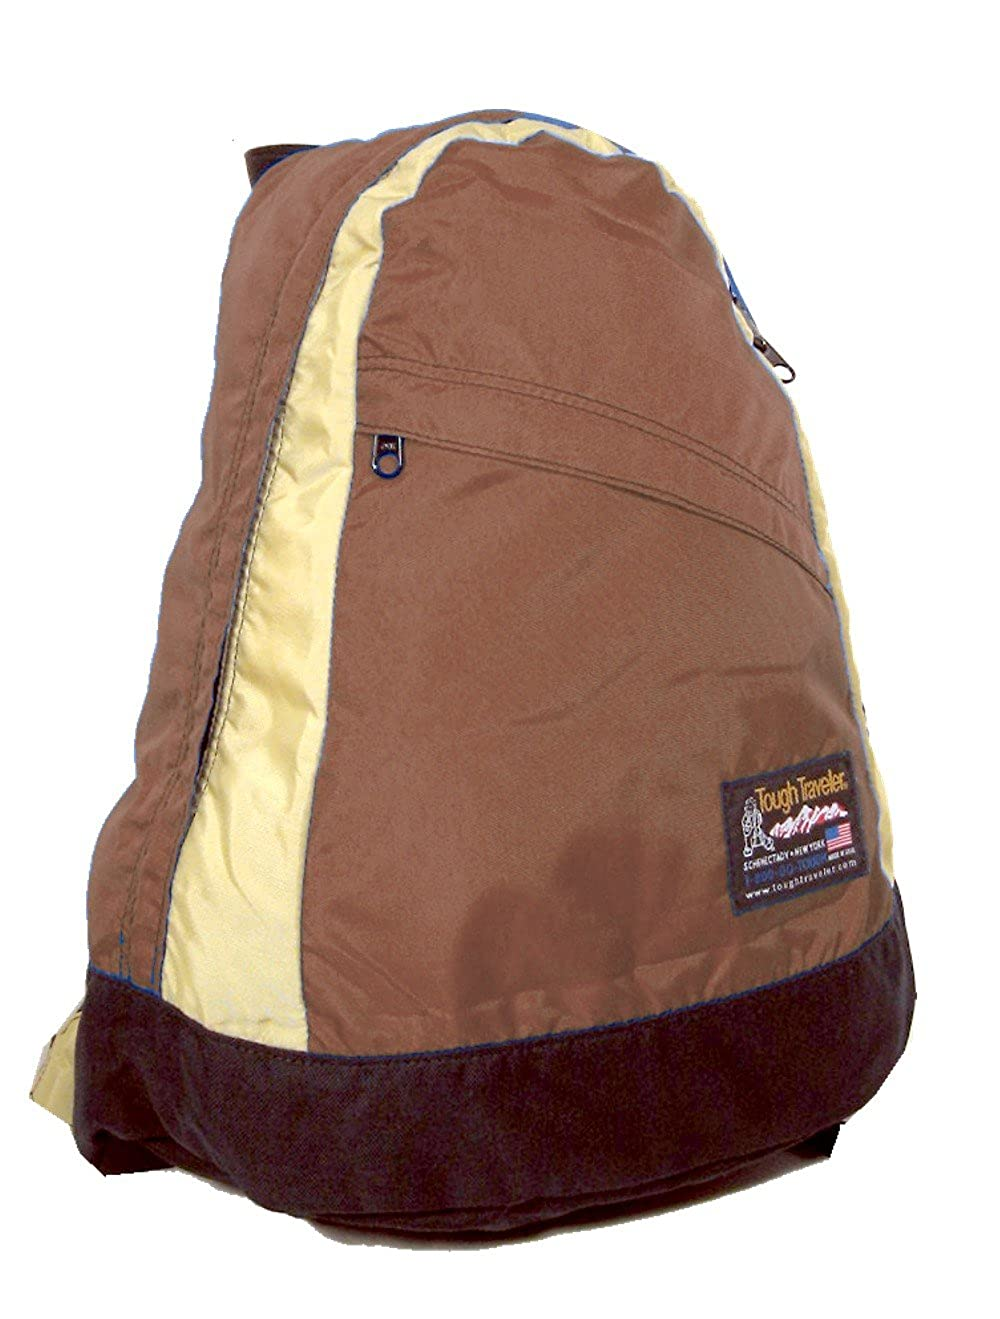 Tough Traveler Odyssey Backpack Made in USA